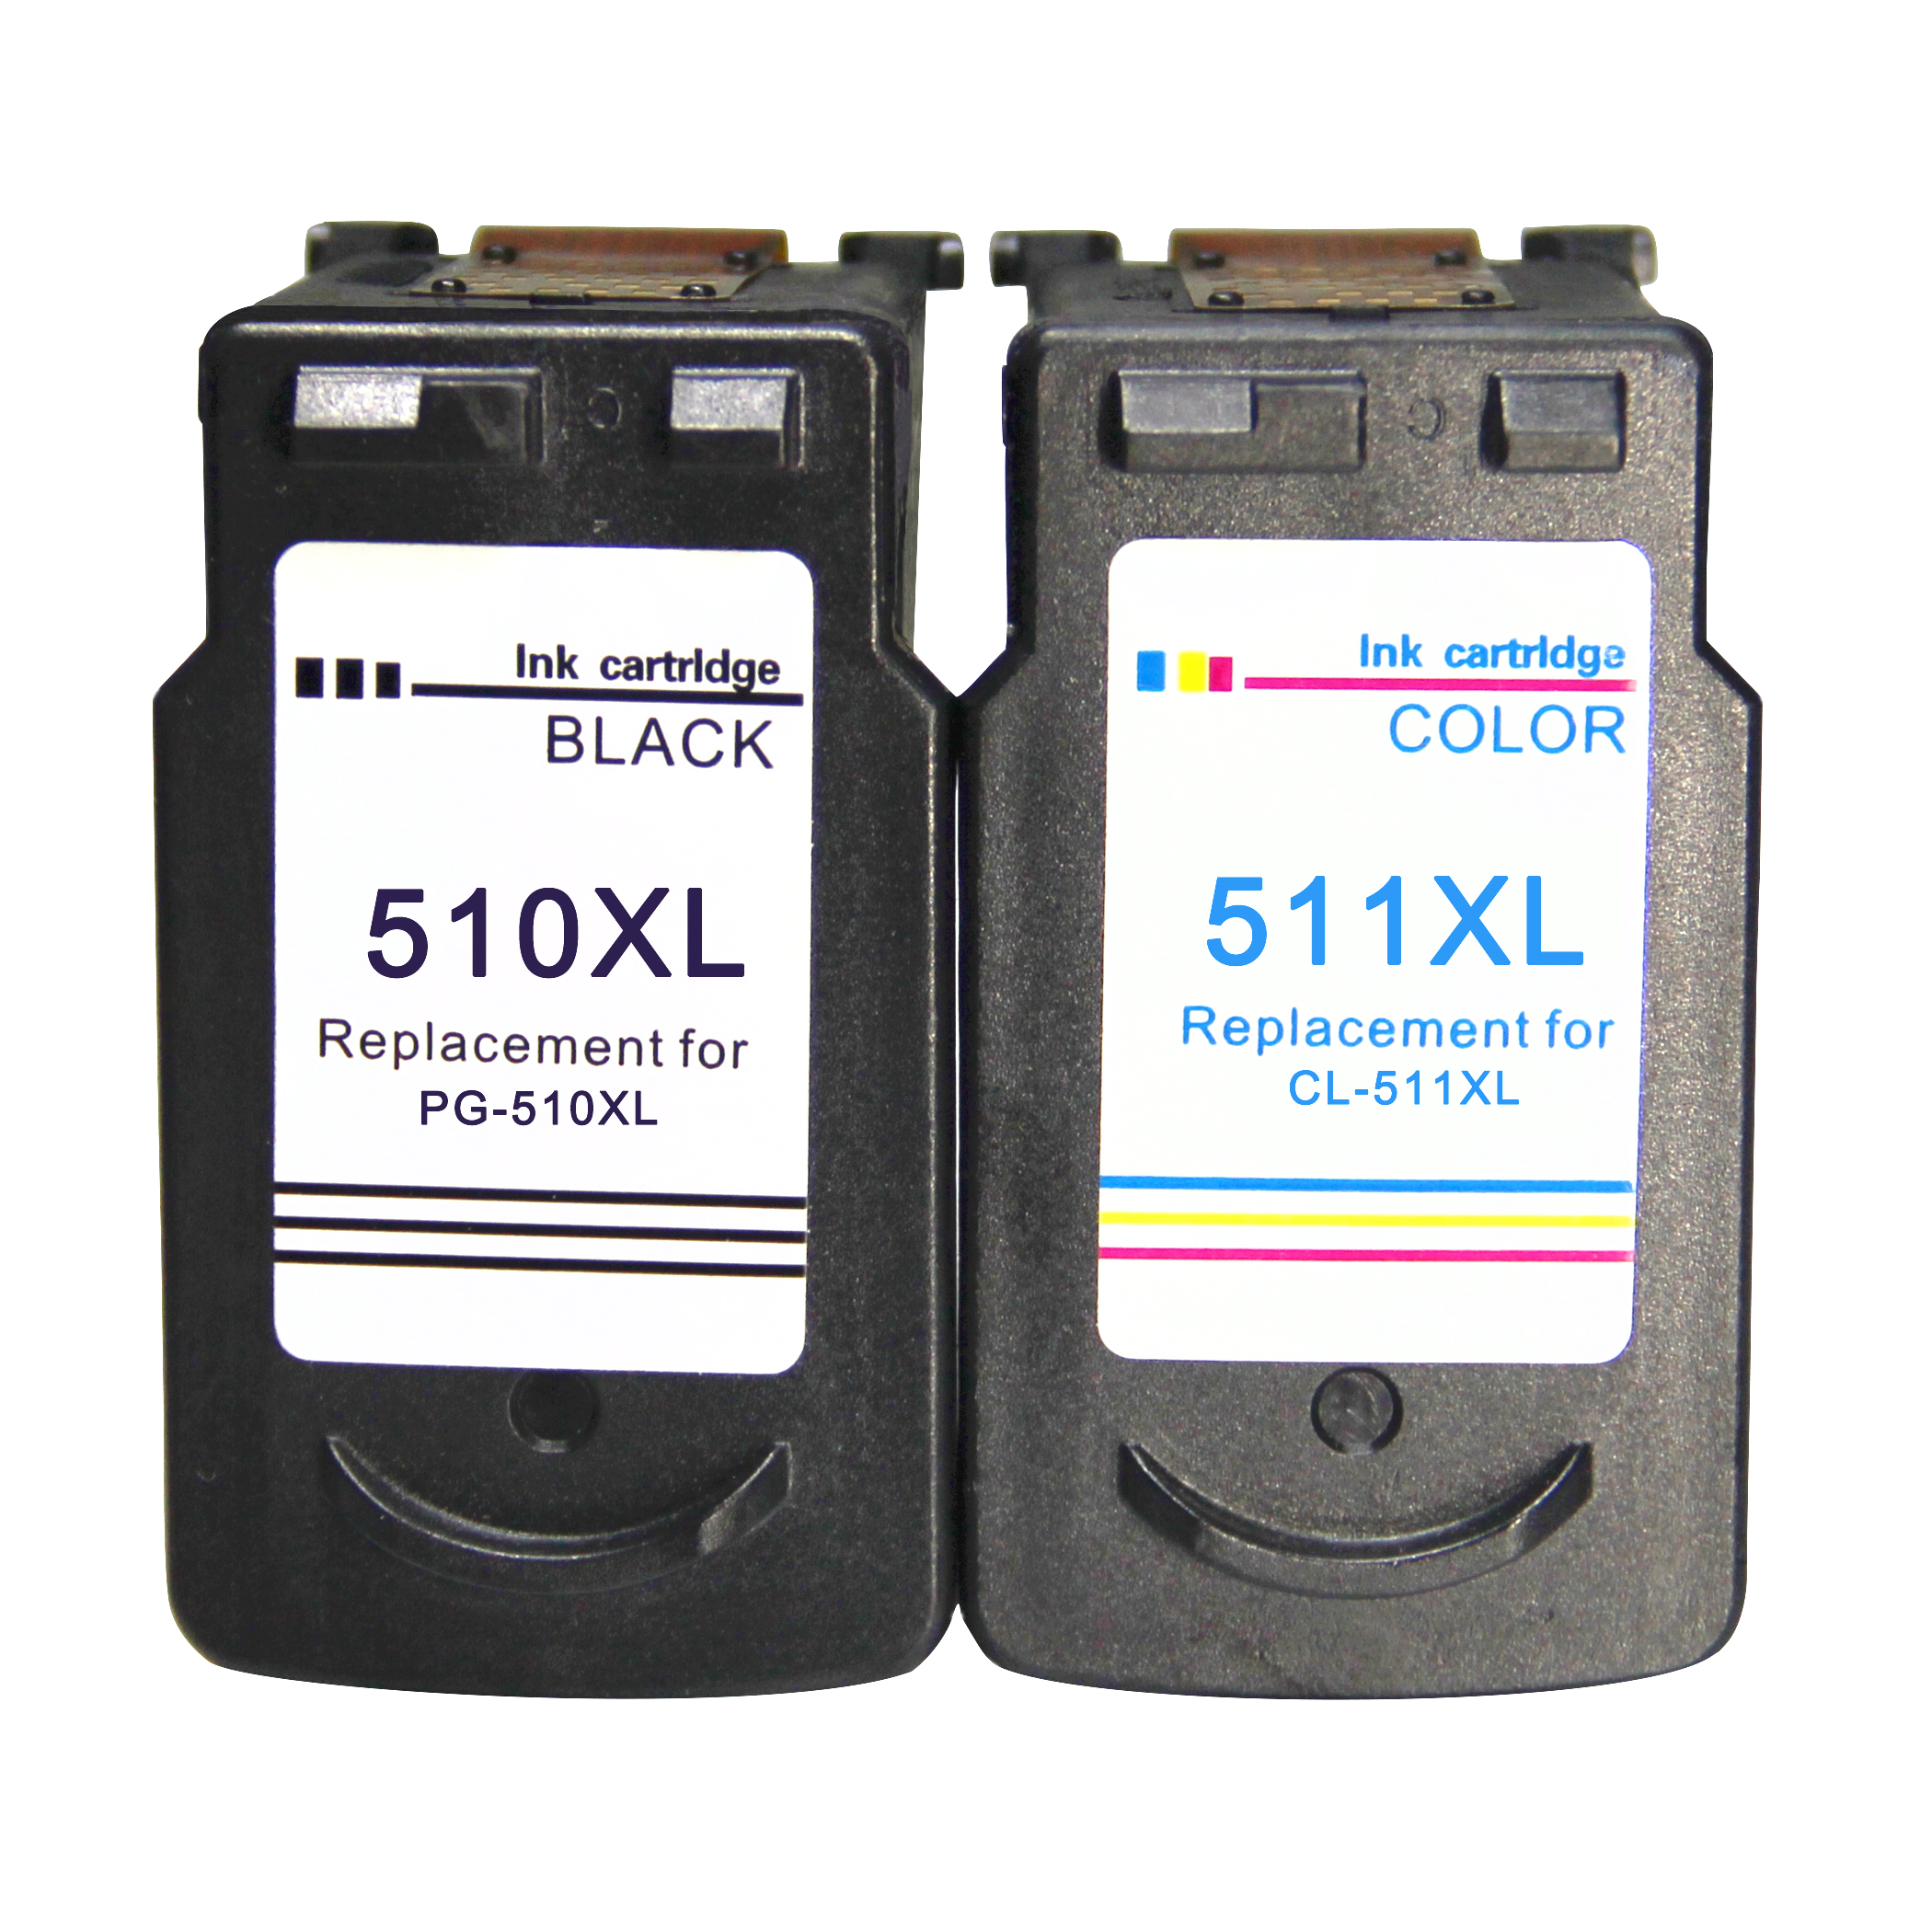 PG510 CL511 Ink Cartridge Replacement For Canon PG 510 Pg-510 CL 511 For MP240 MP250 MP260 MP280 MP480 MP490 IP2700 MP480 MX320